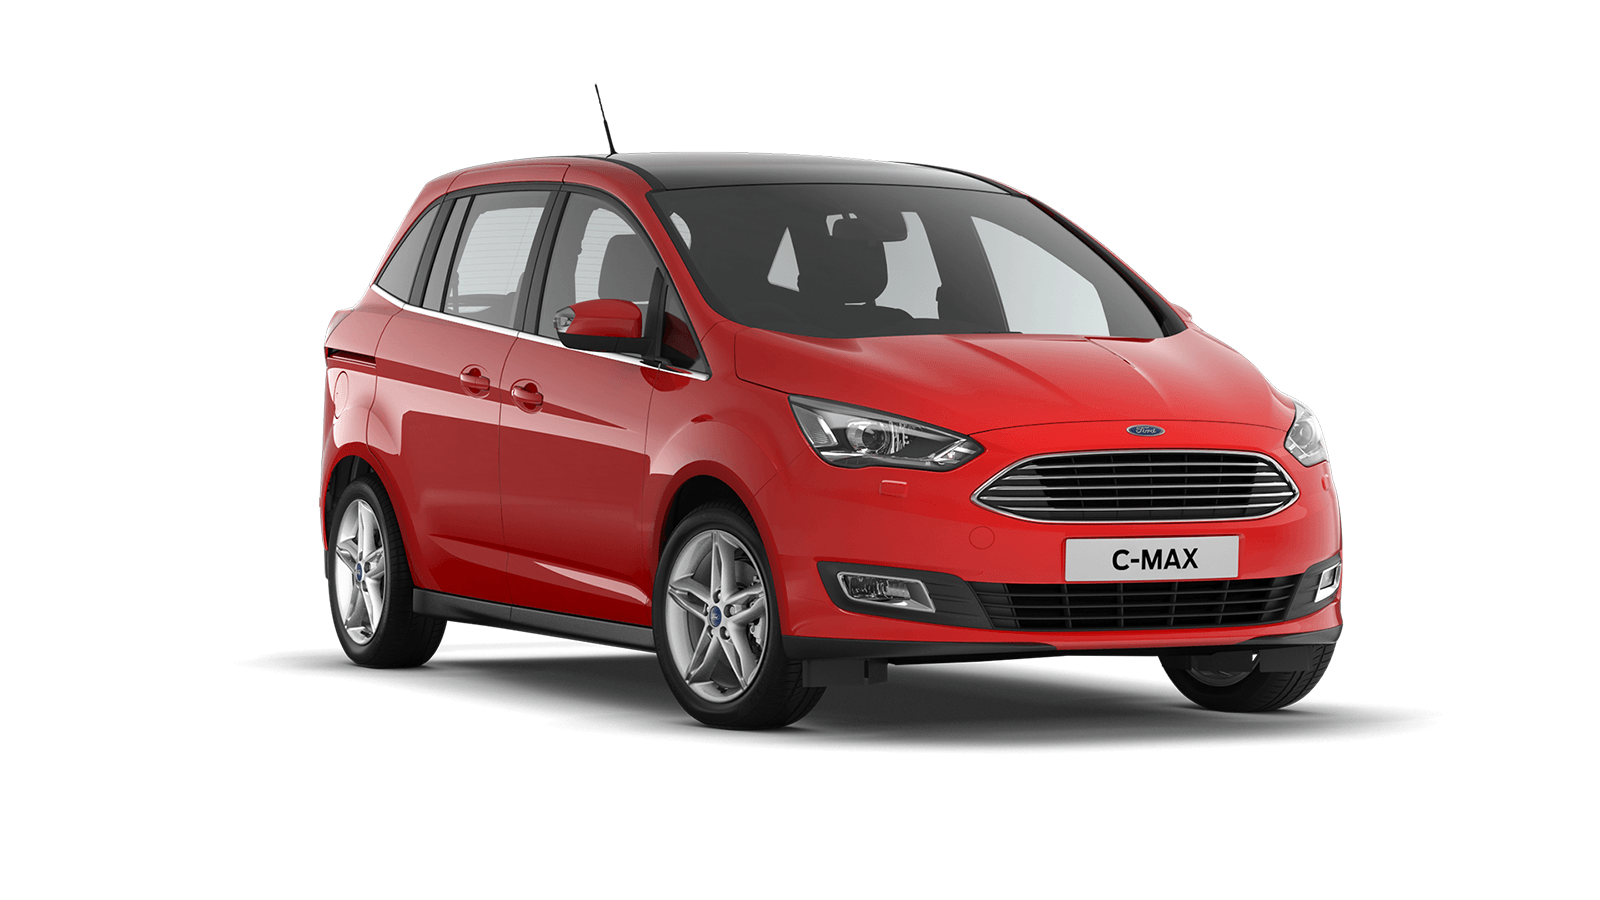 Ford Grand C-MAX at Ludham Garage